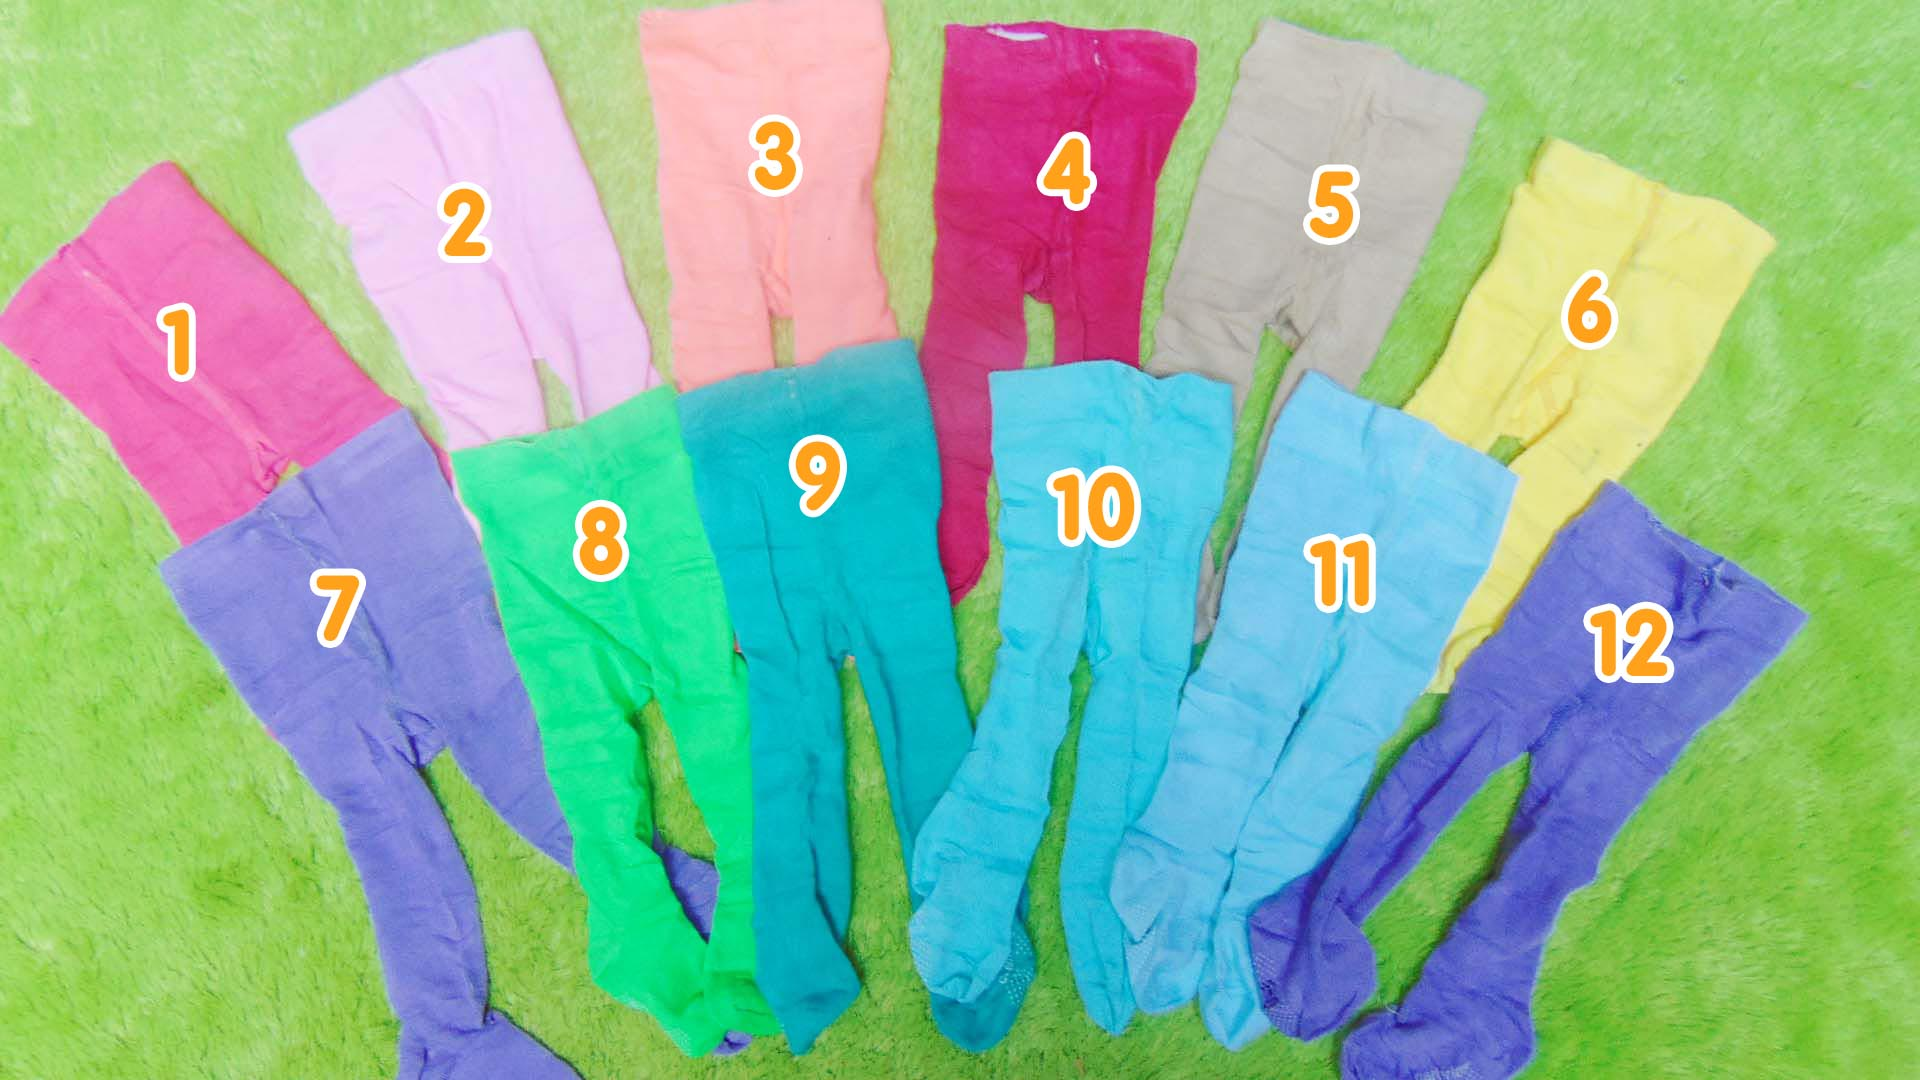 kado bayi Legging Bayi Cotton Rich Polos Carter Love Aneka Warna Tutup Kaki 0-6bulan (2) copy